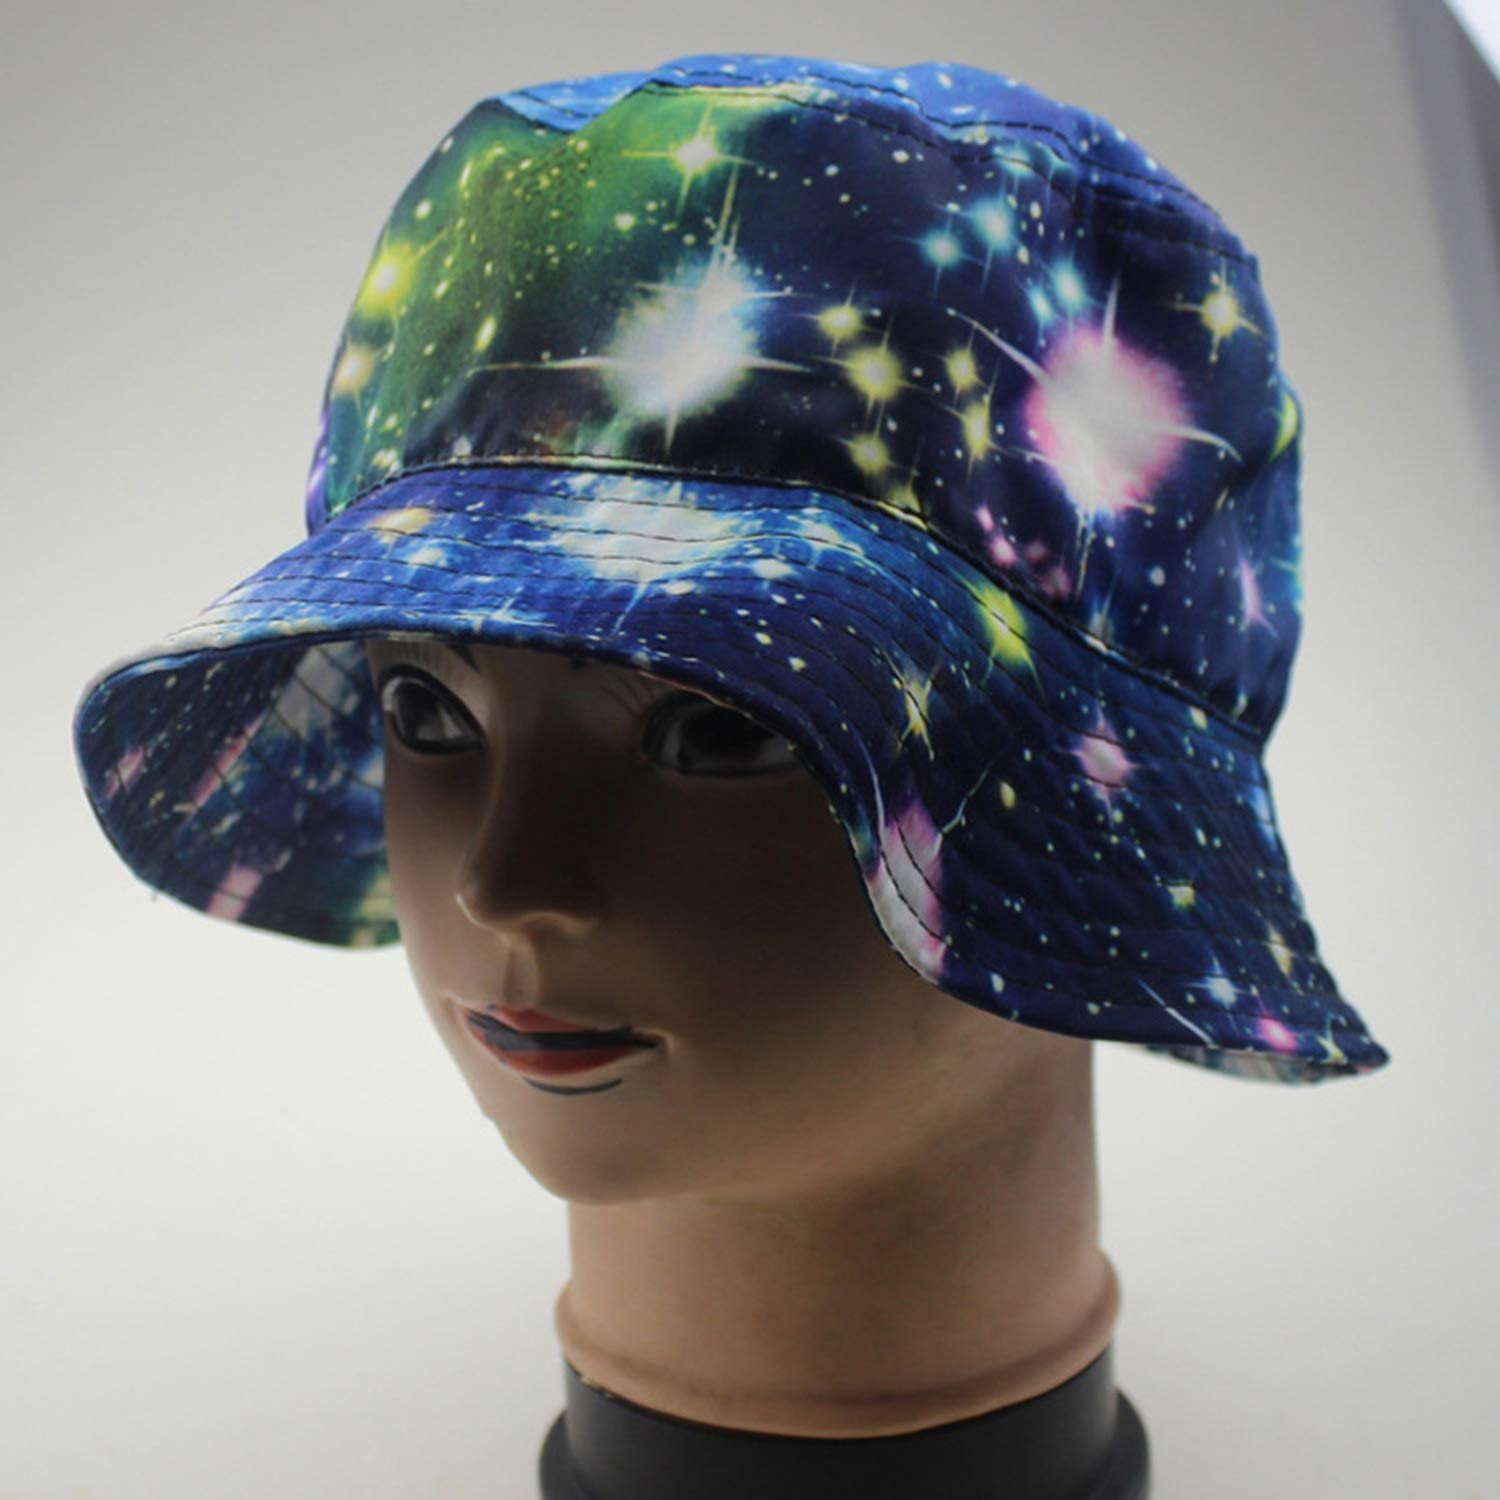 Bucket Hats Women Fruit Star Printed Spring Sun Shading Outdoor Fisherman Hat Womens All-Match Leisure Trendy Chic,4,One Size